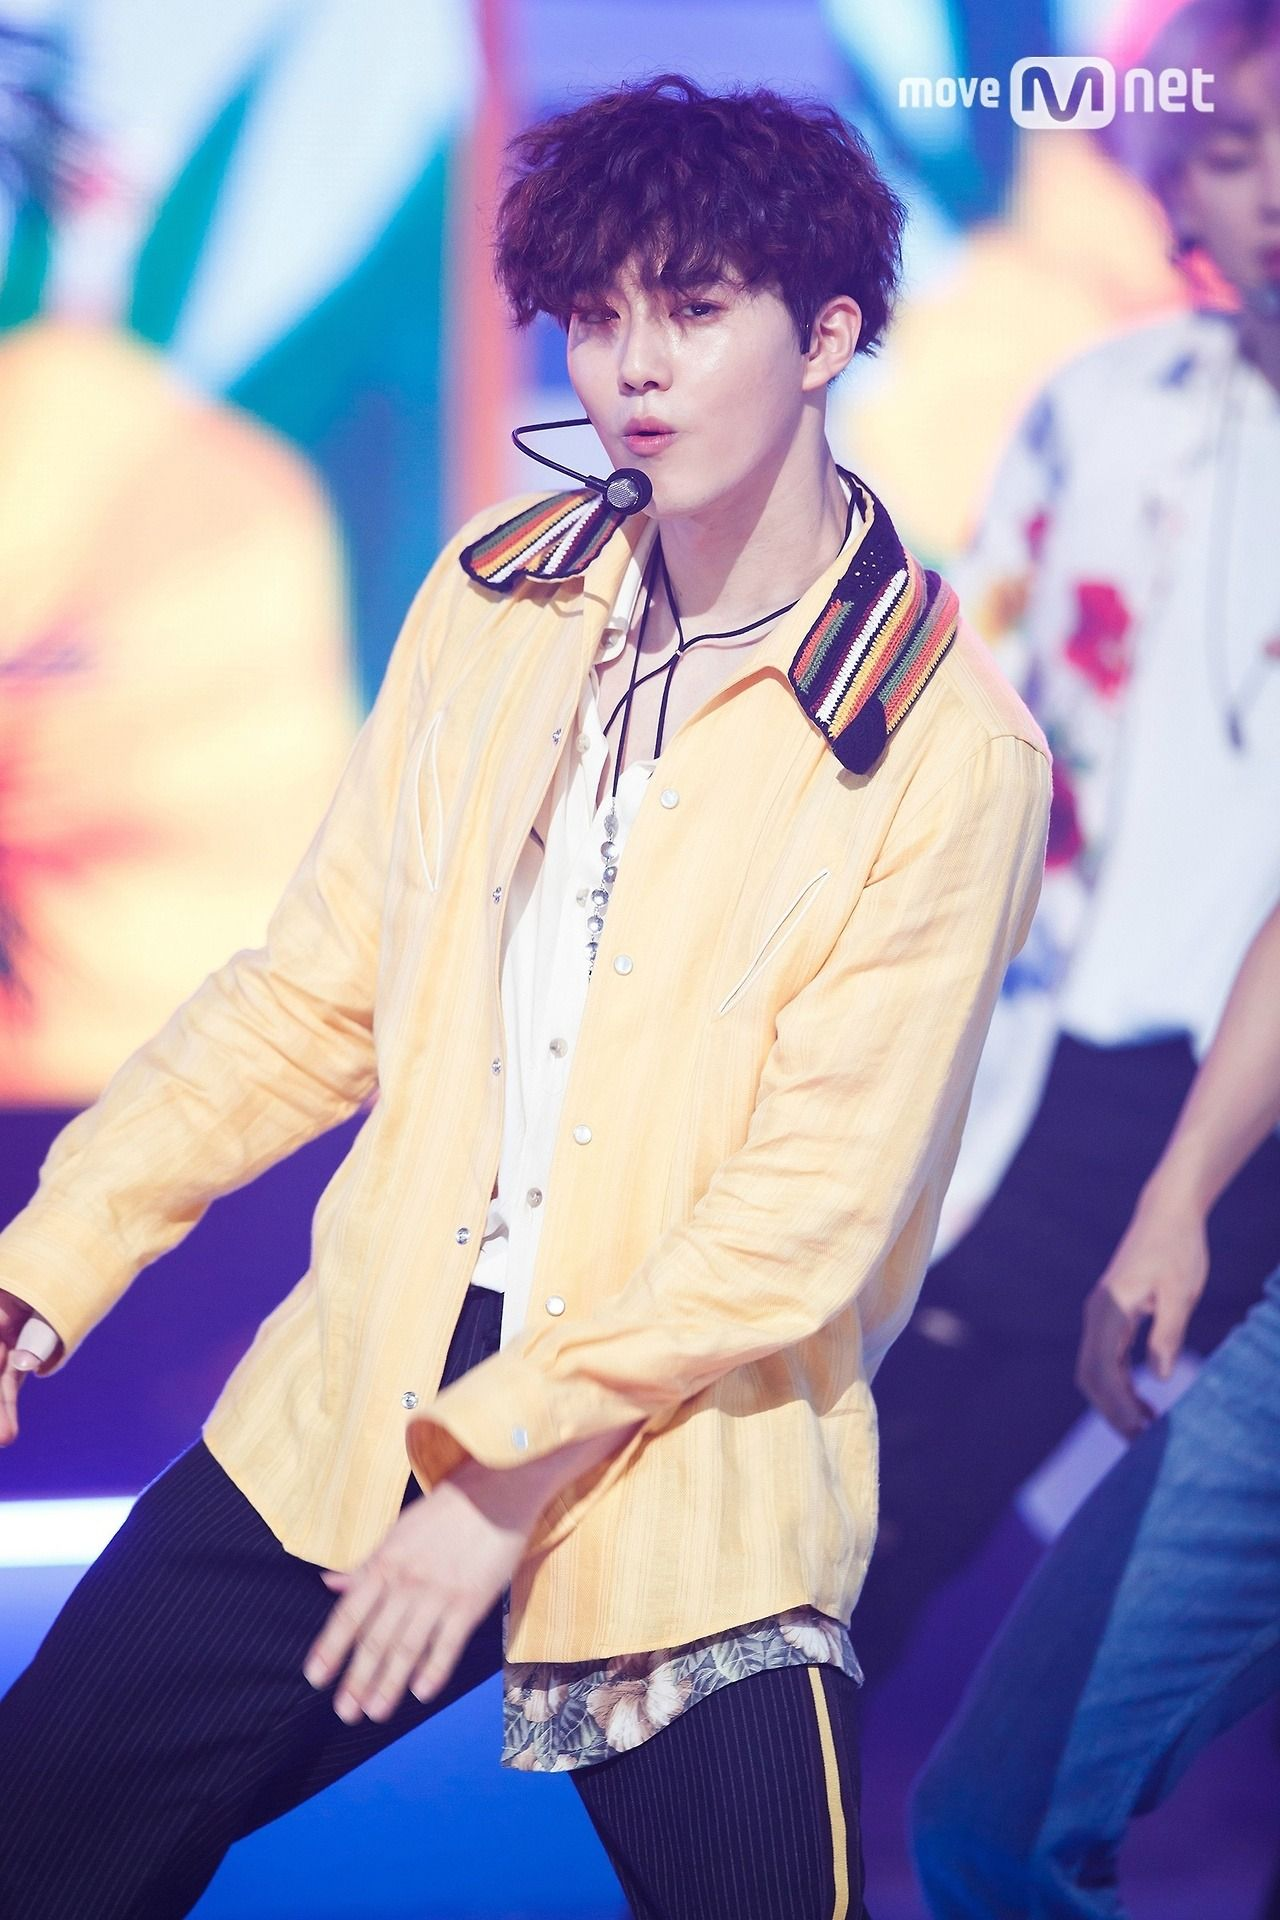 170720 SUHO EXO MNET MCOUNTDOWN SUHO Pinterest EXO Suho